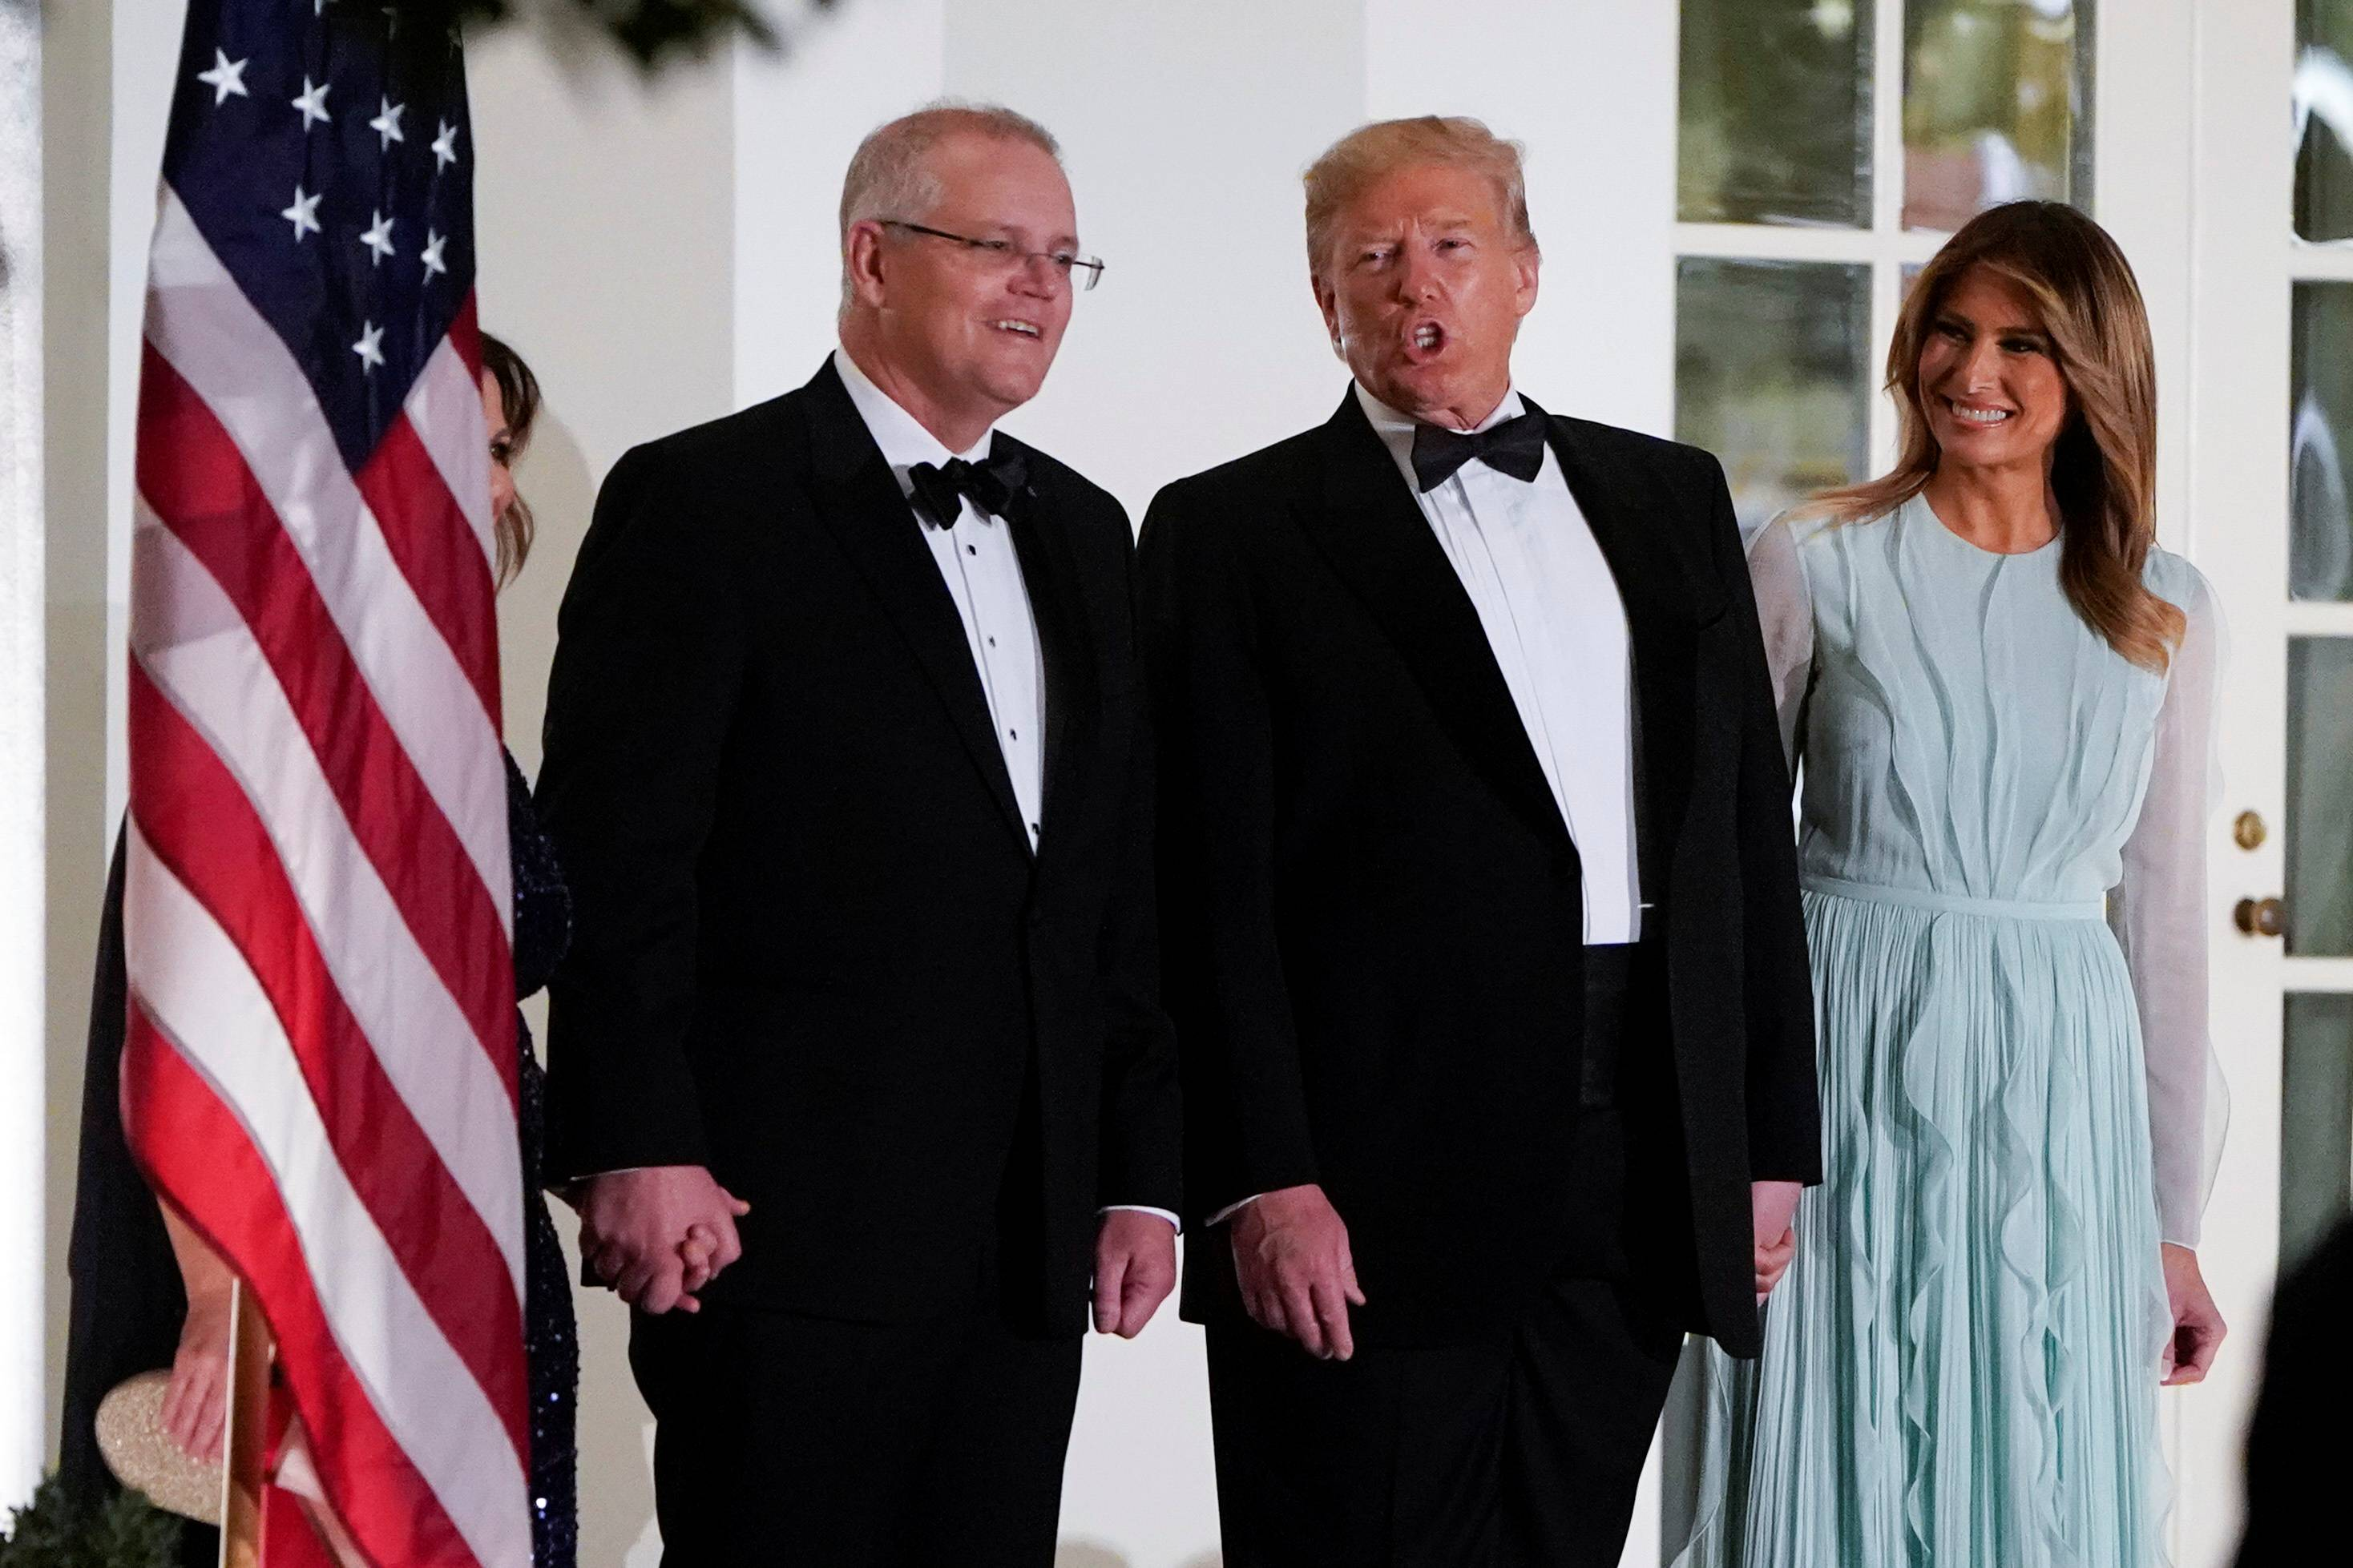 U.S. President Donald Trump and first lady Melania Trump are joined by Australian Prime Minister Scott Morrison and his wife, Jenny Morrison, for a state dinner at the White House in 2019. | REUTERS